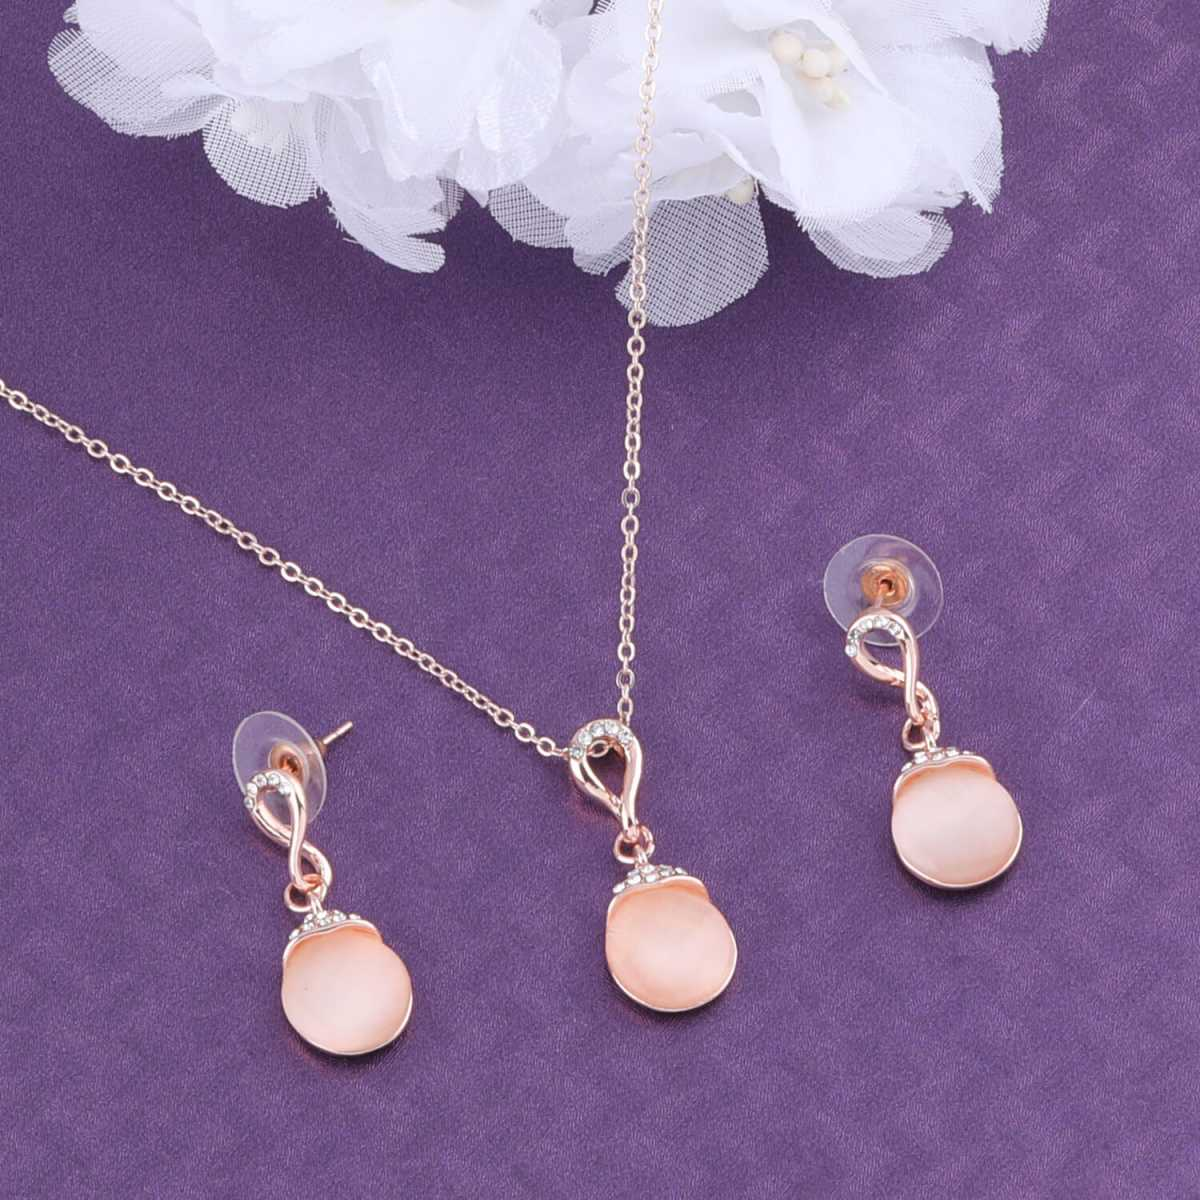 SILVER SHINE Exclusive Delicate Pendant Set For Women Girl